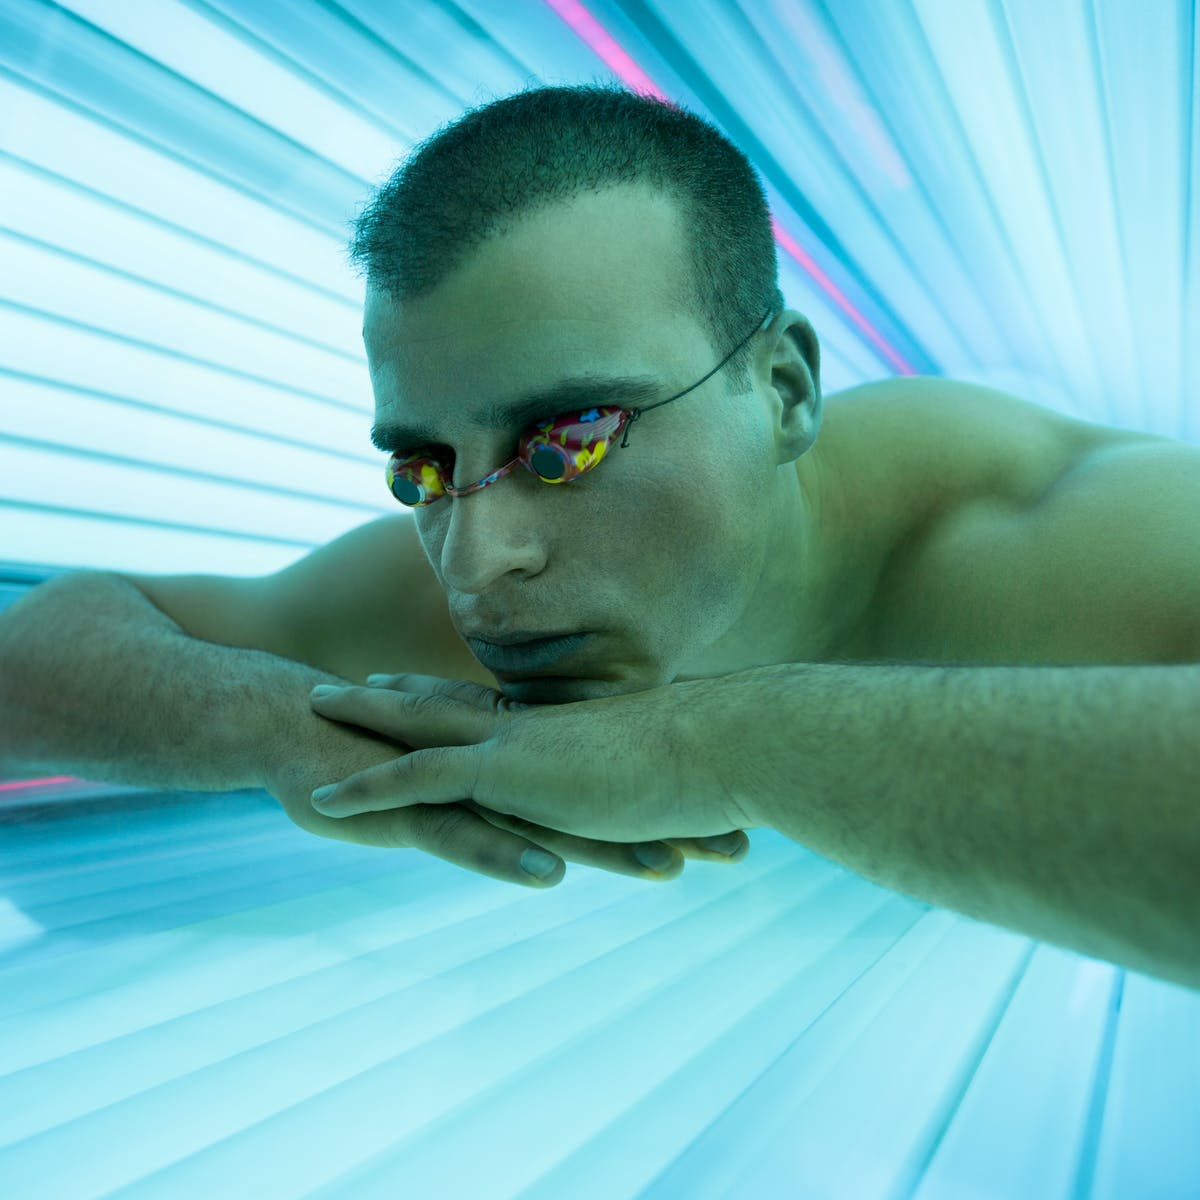 Study shows that the tanning industry may be targeting neighborhoods with g